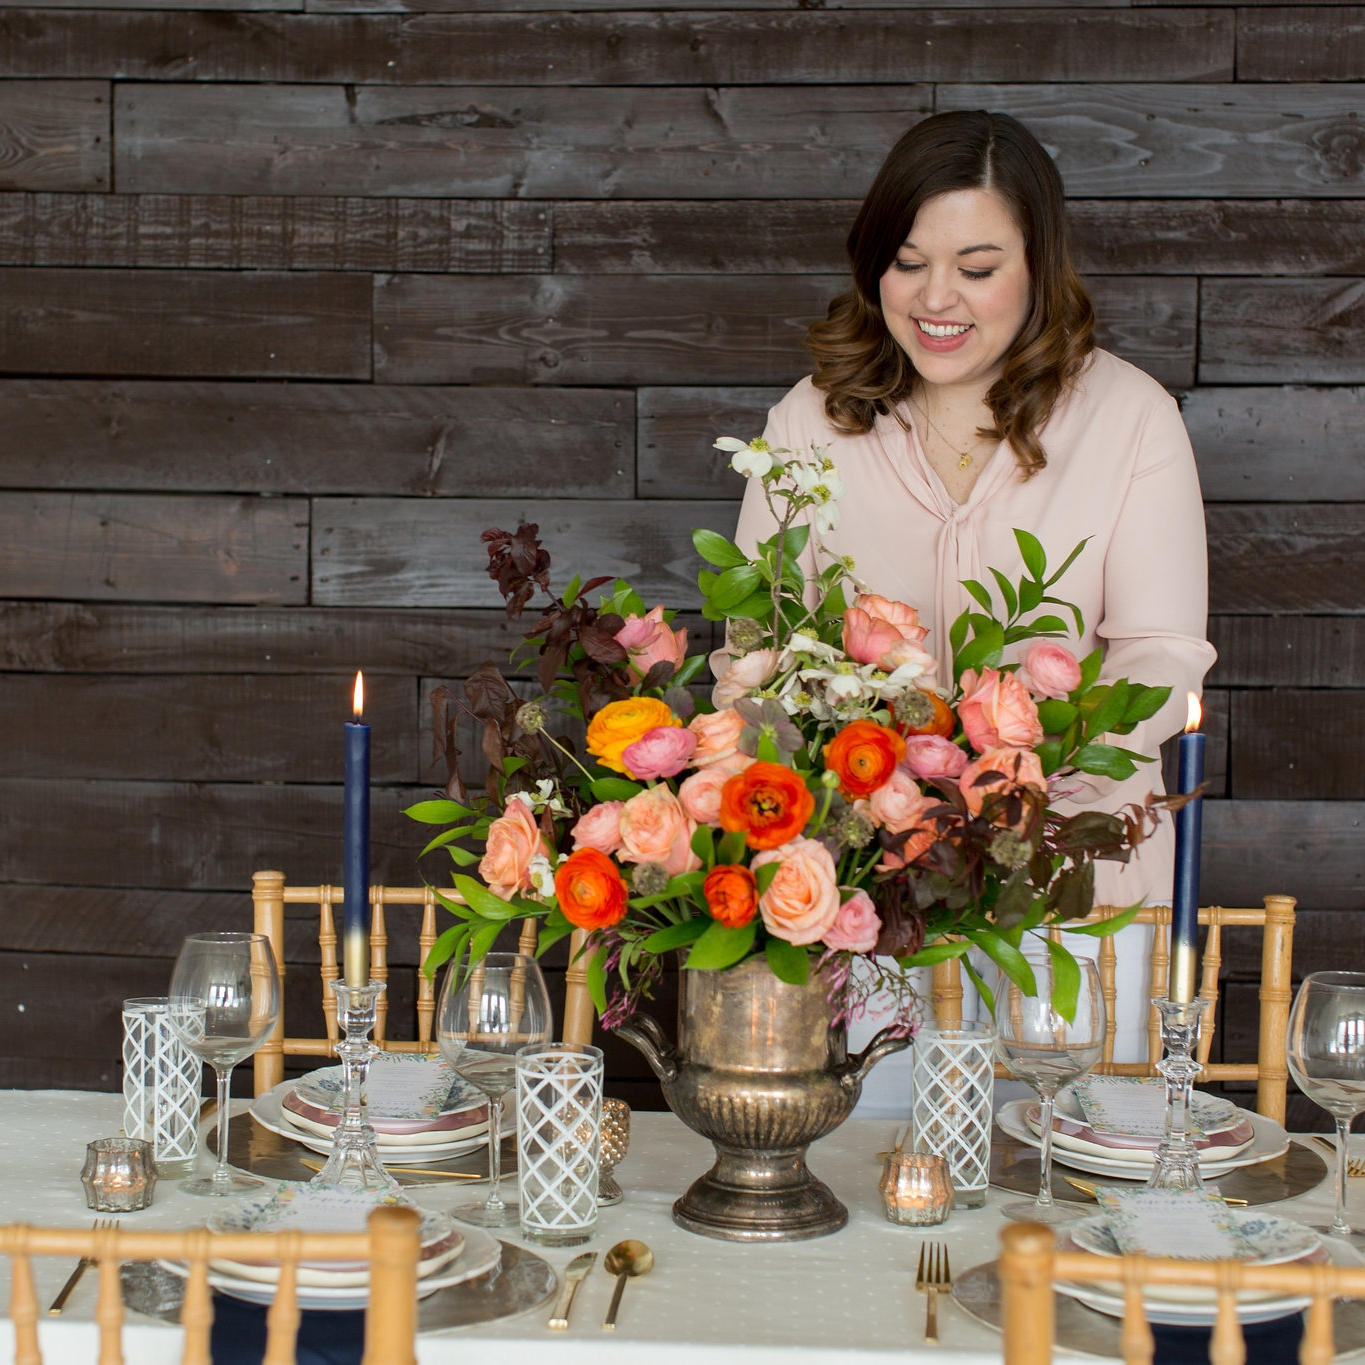 Meet Abby | Heirloom Event Co. | Photo by Maria Harte Photography